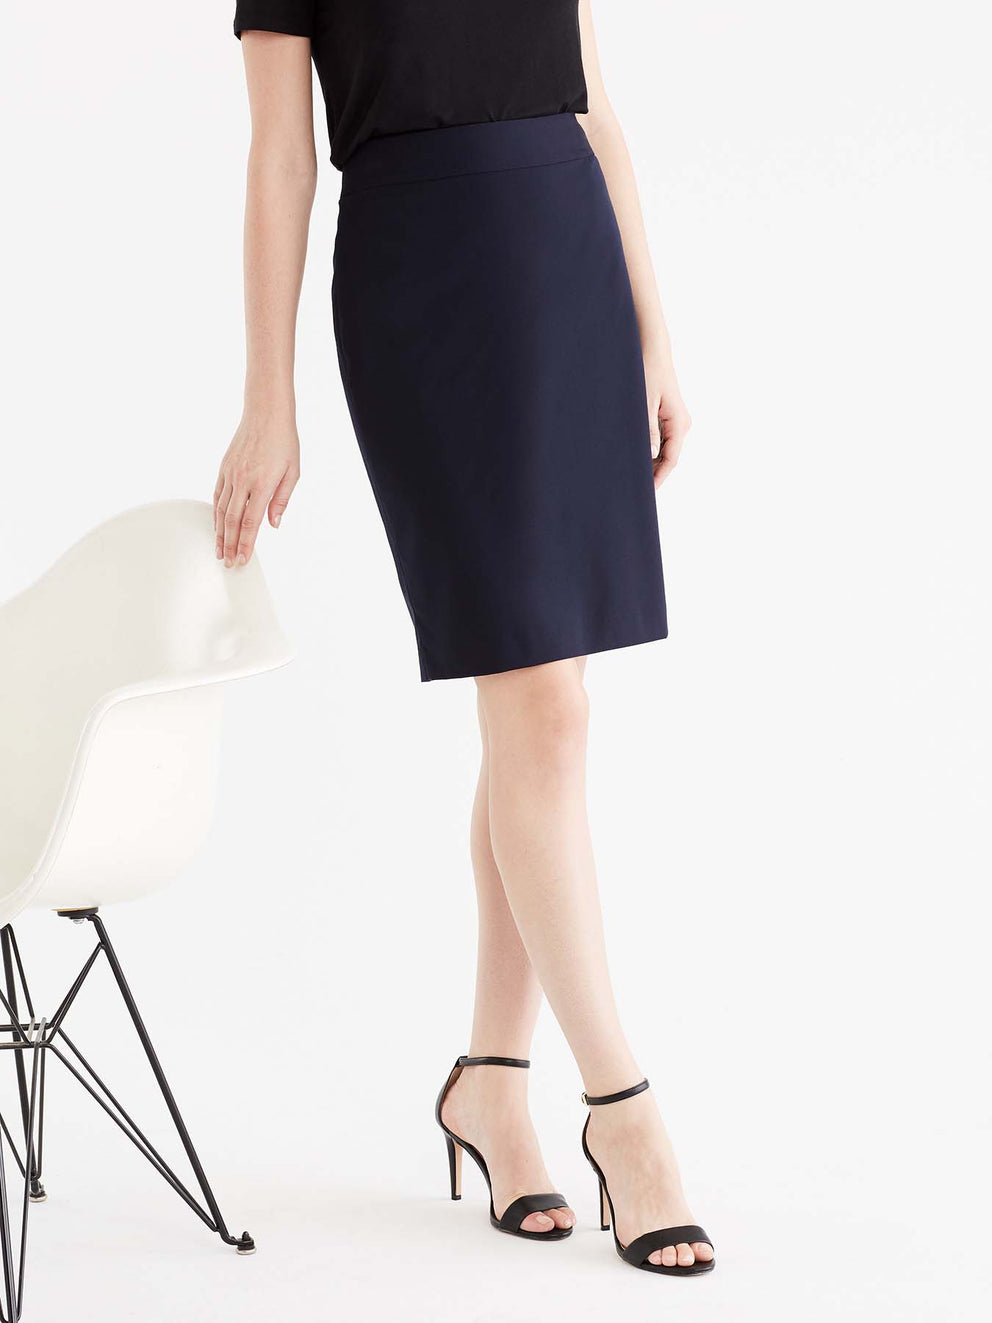 The Jones New York Washable Pencil Skirt in color Navy - Image Position 1